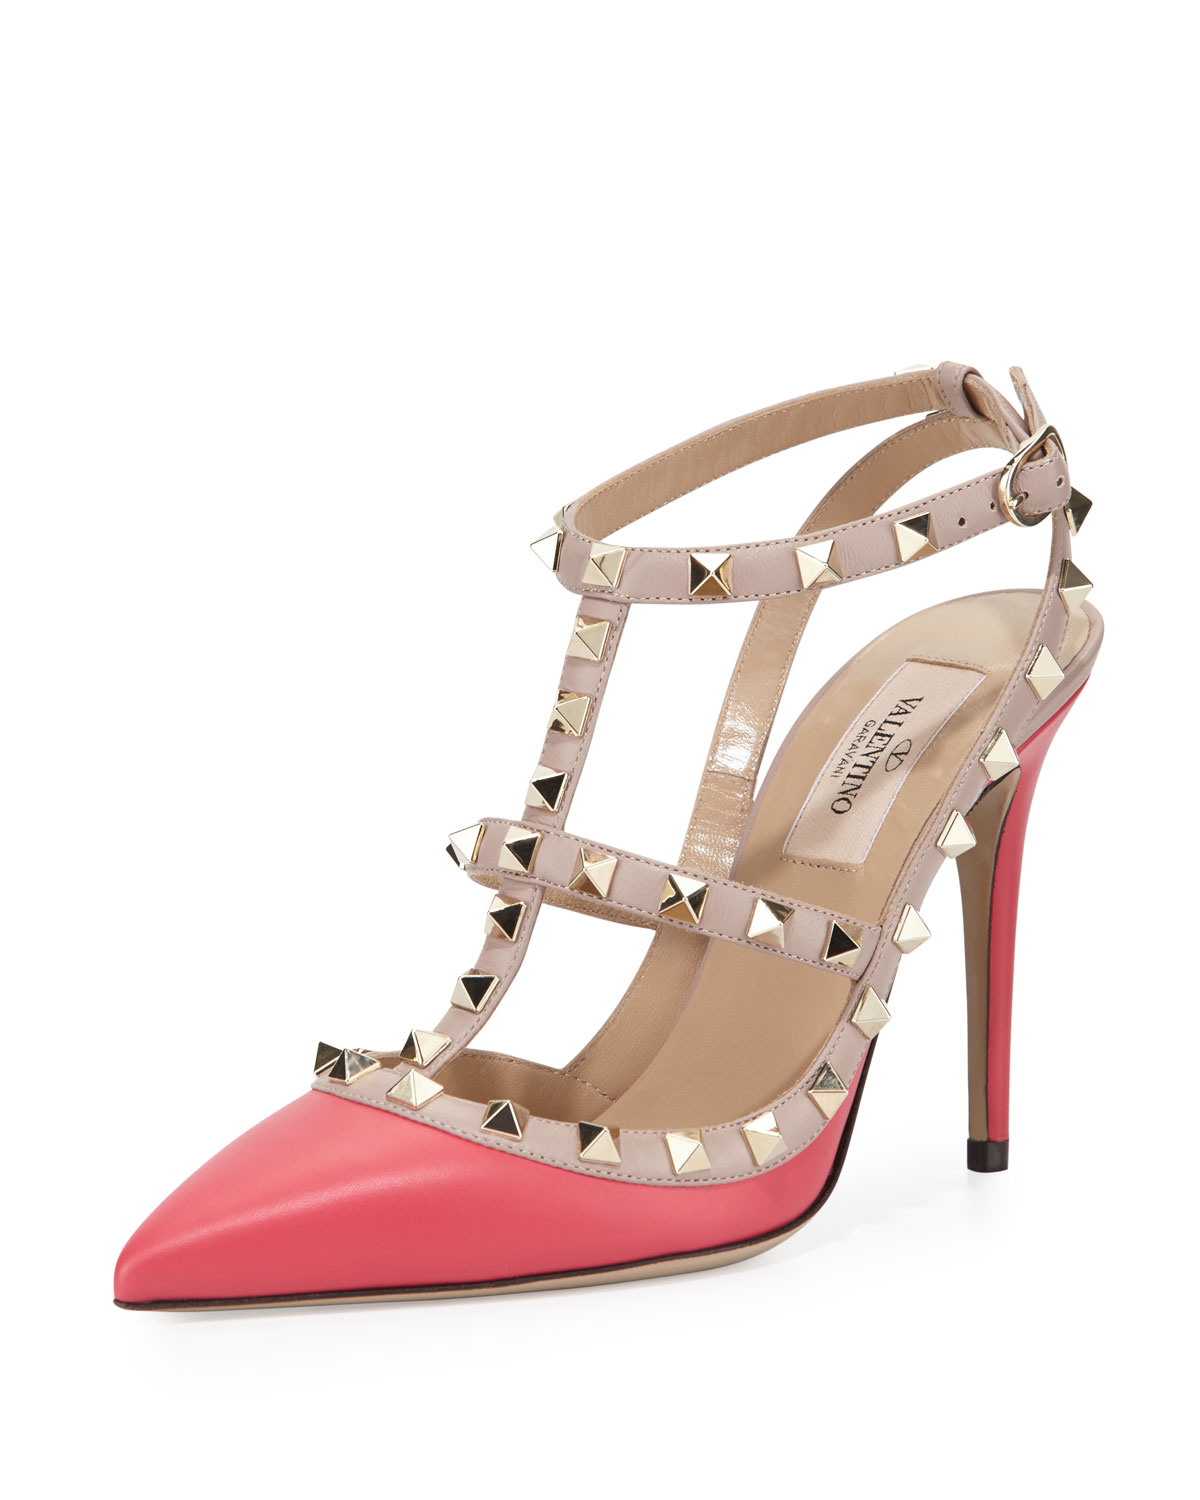 Rockstud Leather 100mm Pump, Deep Fuchsia/Poudre - Valentino